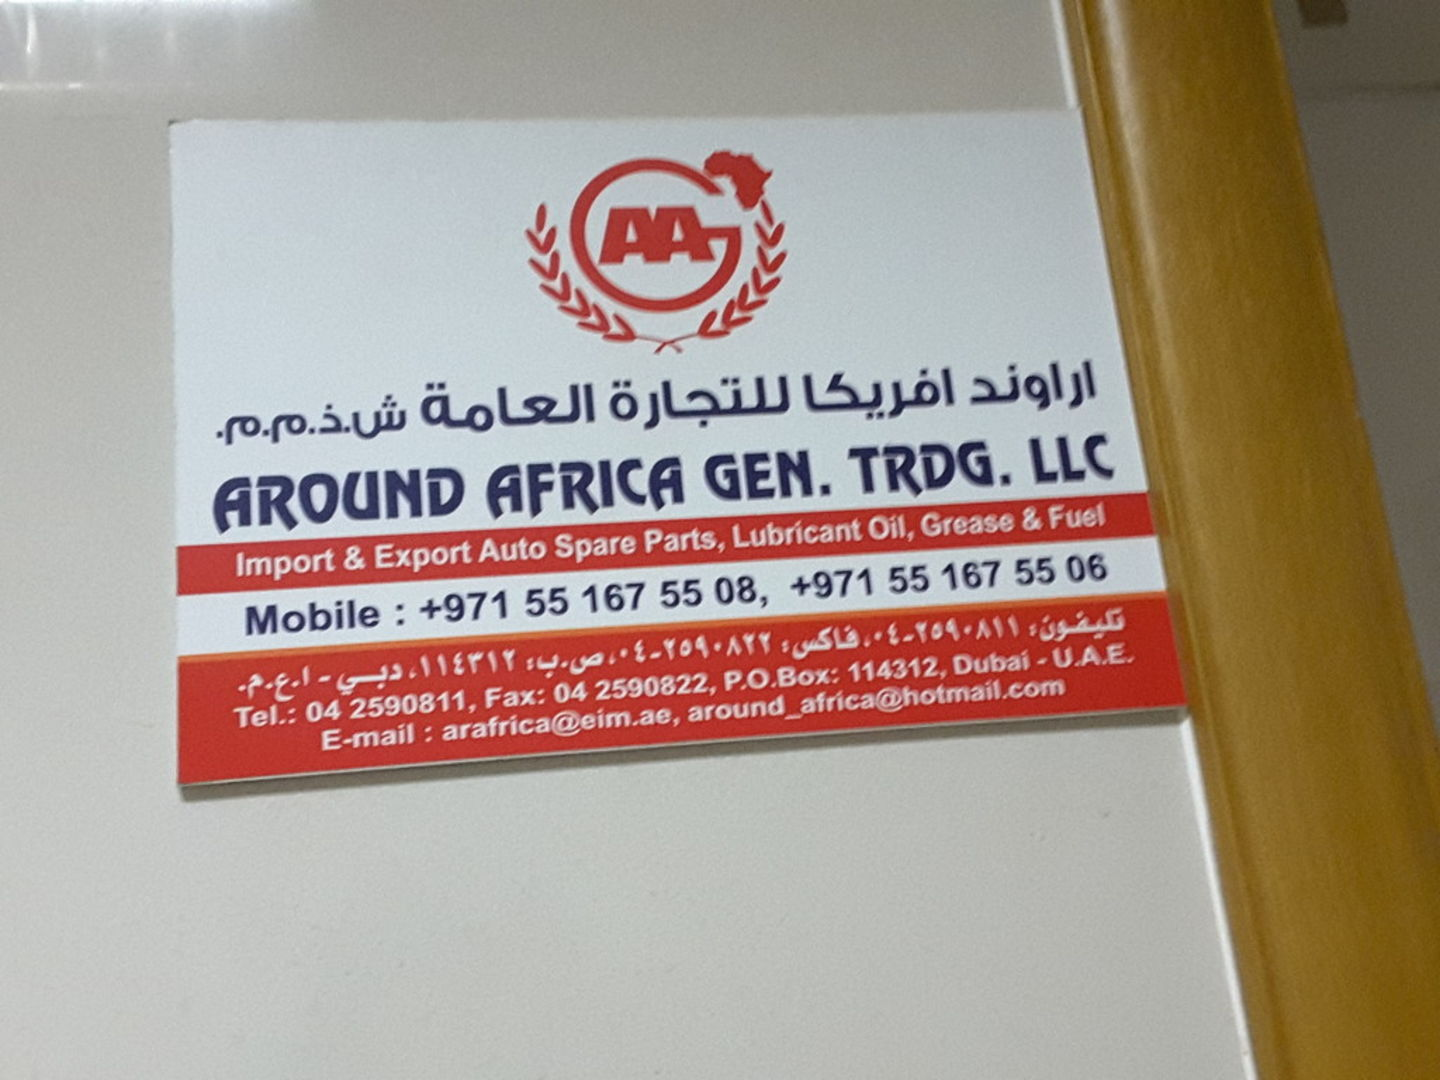 Around Africa General Trading, (Oil & Gas Companies) in Naif